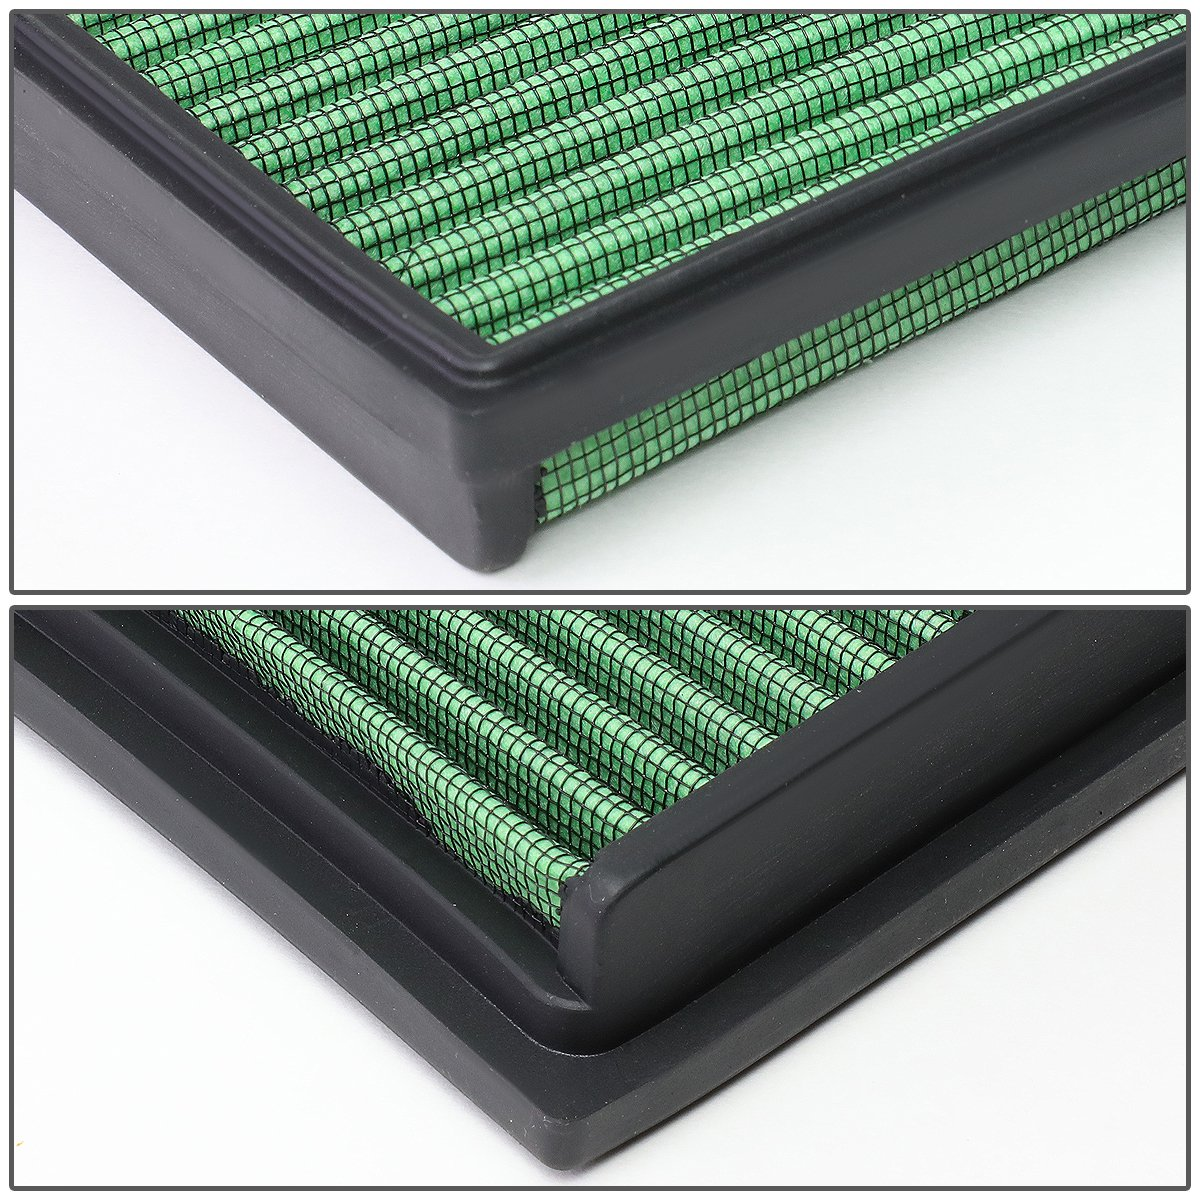 Amazon.com: For VW Suran/Golf/Candy/Polo 1.4L 1.6L Washable Panel Air Filter (Green): Automotive